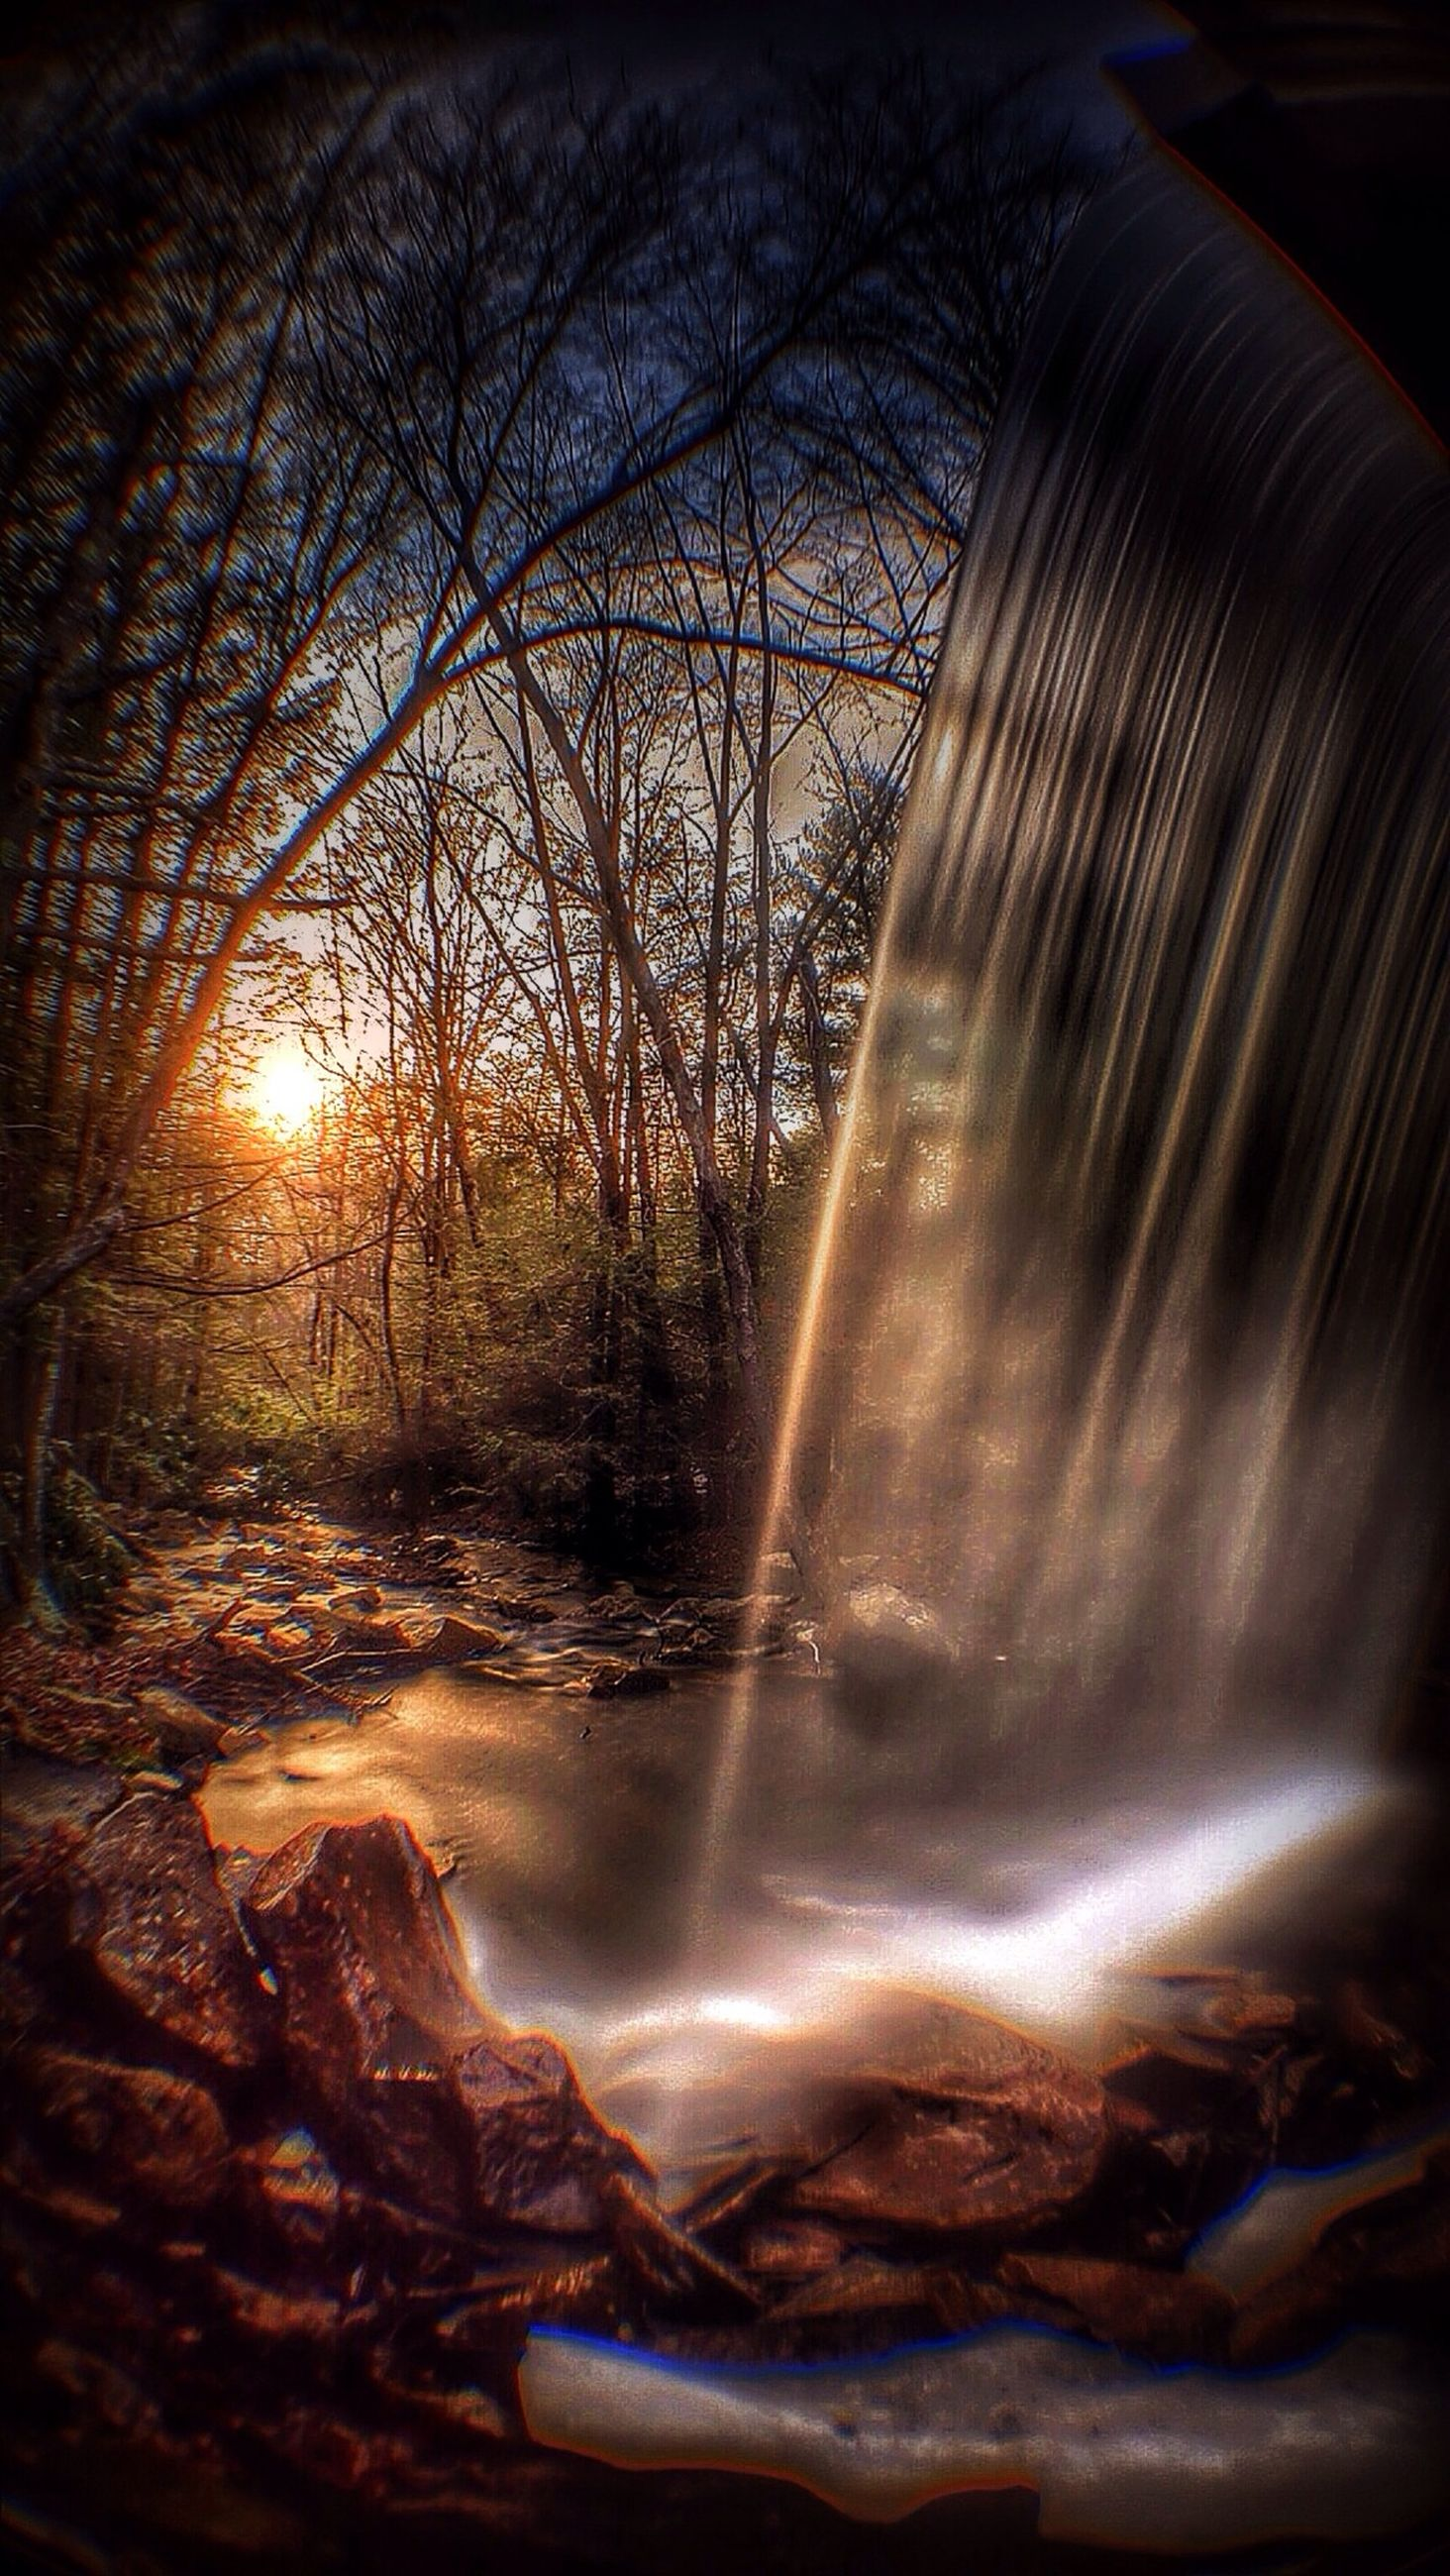 water, long exposure, motion, flowing water, tree, nature, blurred motion, waterfall, flowing, beauty in nature, scenics, forest, splashing, glowing, tranquility, reflection, stream, tranquil scene, sunbeam, sunlight